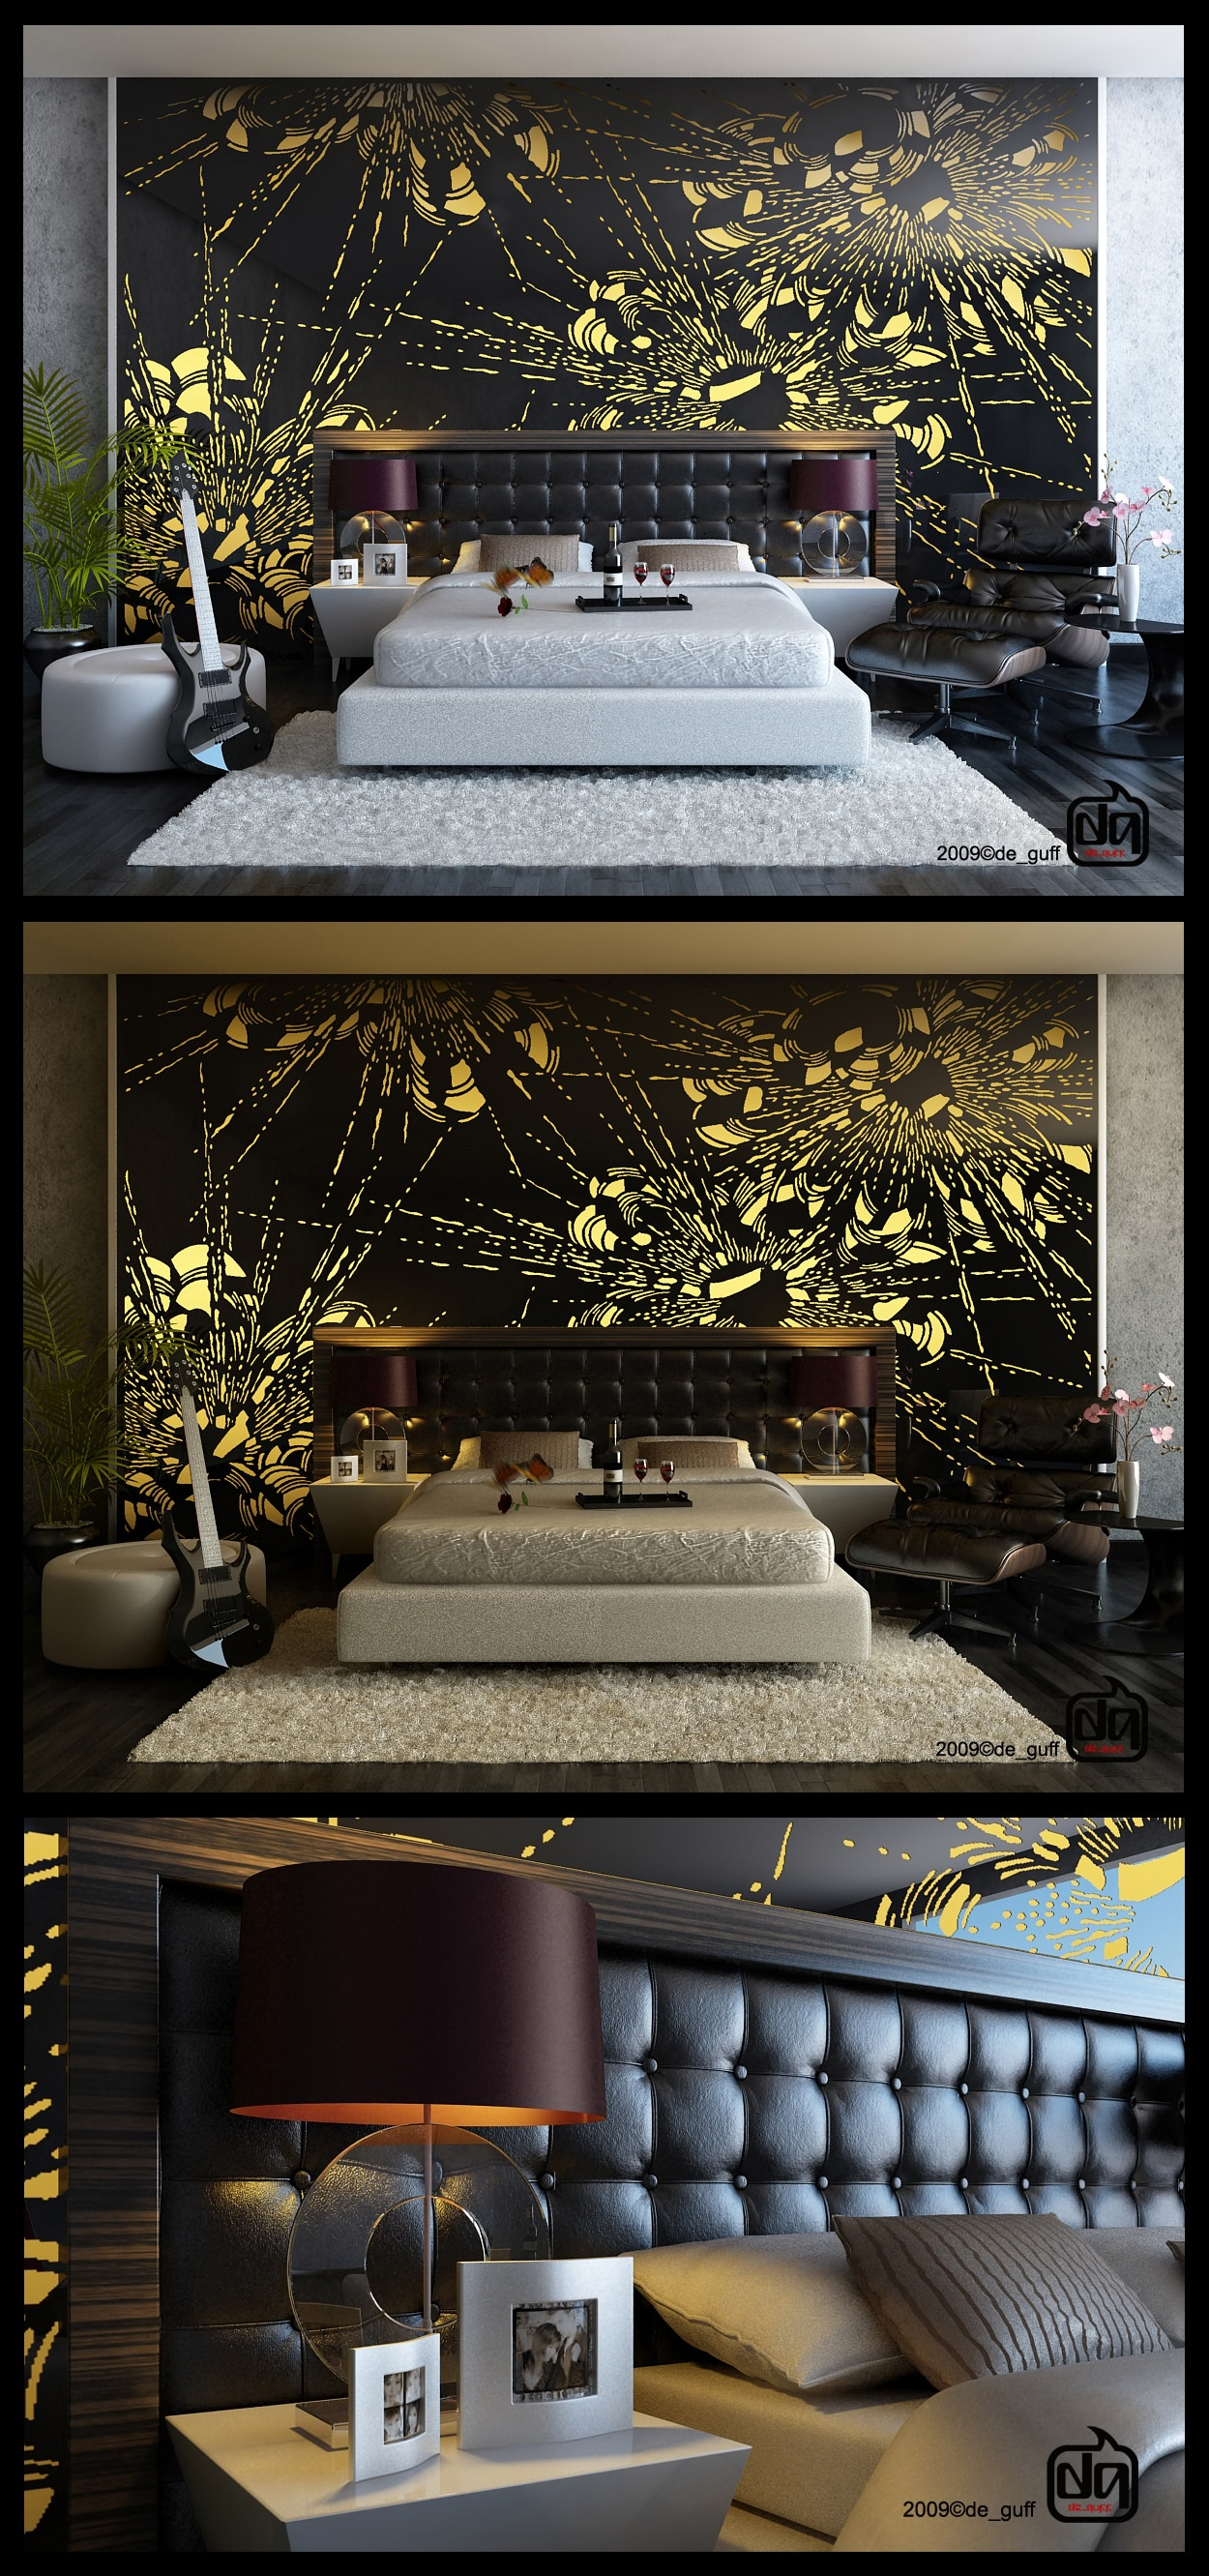 Black yellow bedroom feature wall mural interior design for Black and yellow bedroom designs